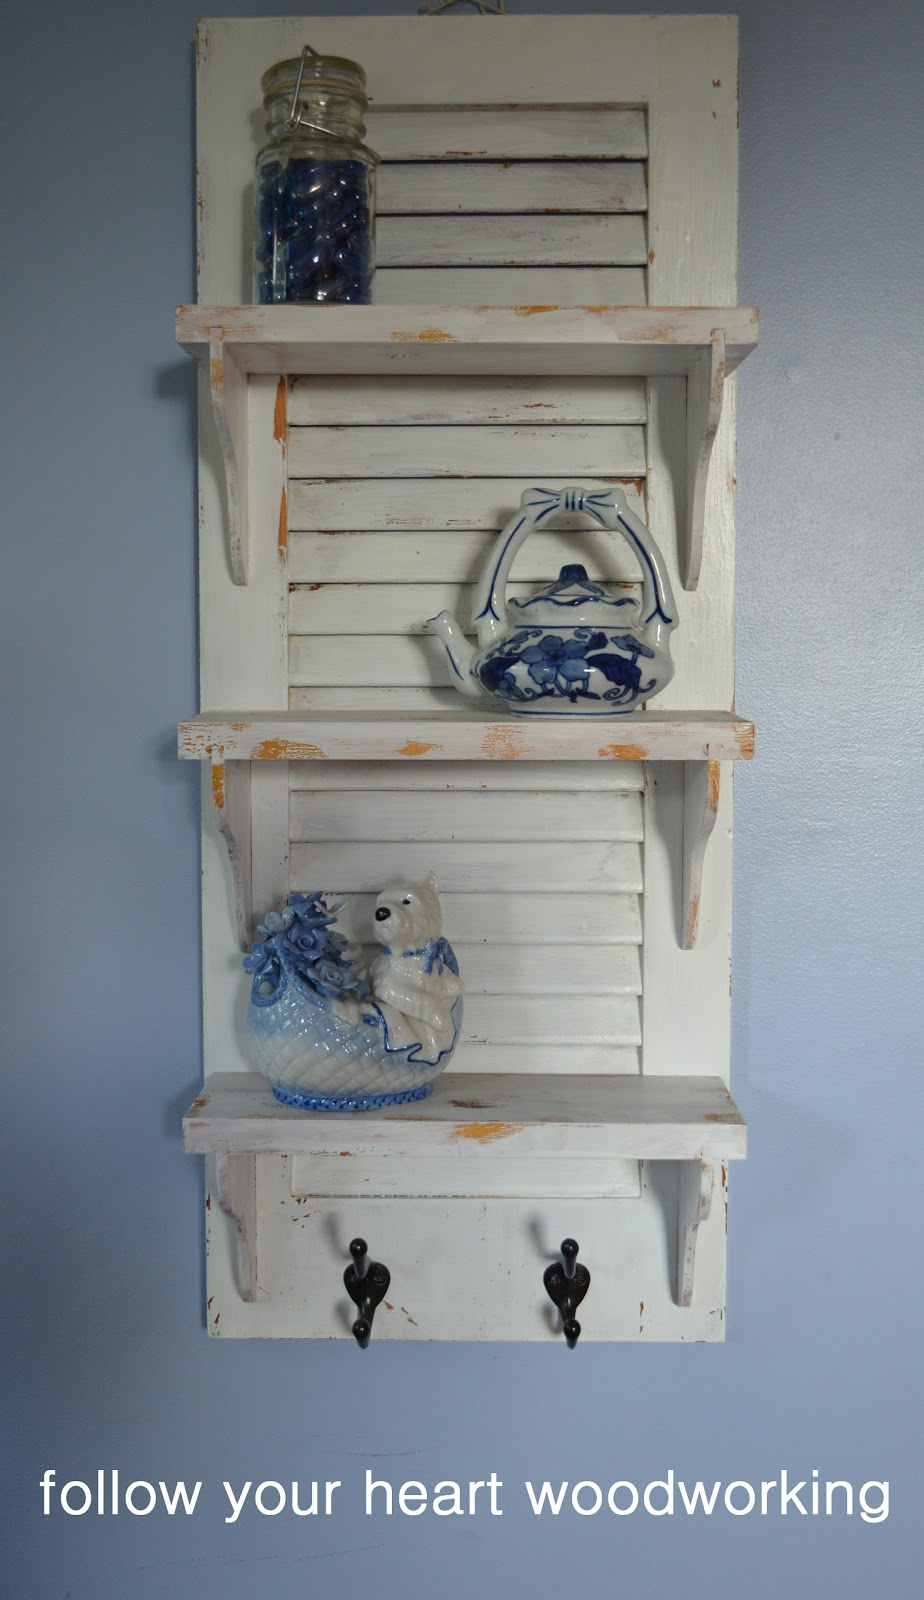 Follow Your Heart Woodworking Shutter Repurposed Into Shelves